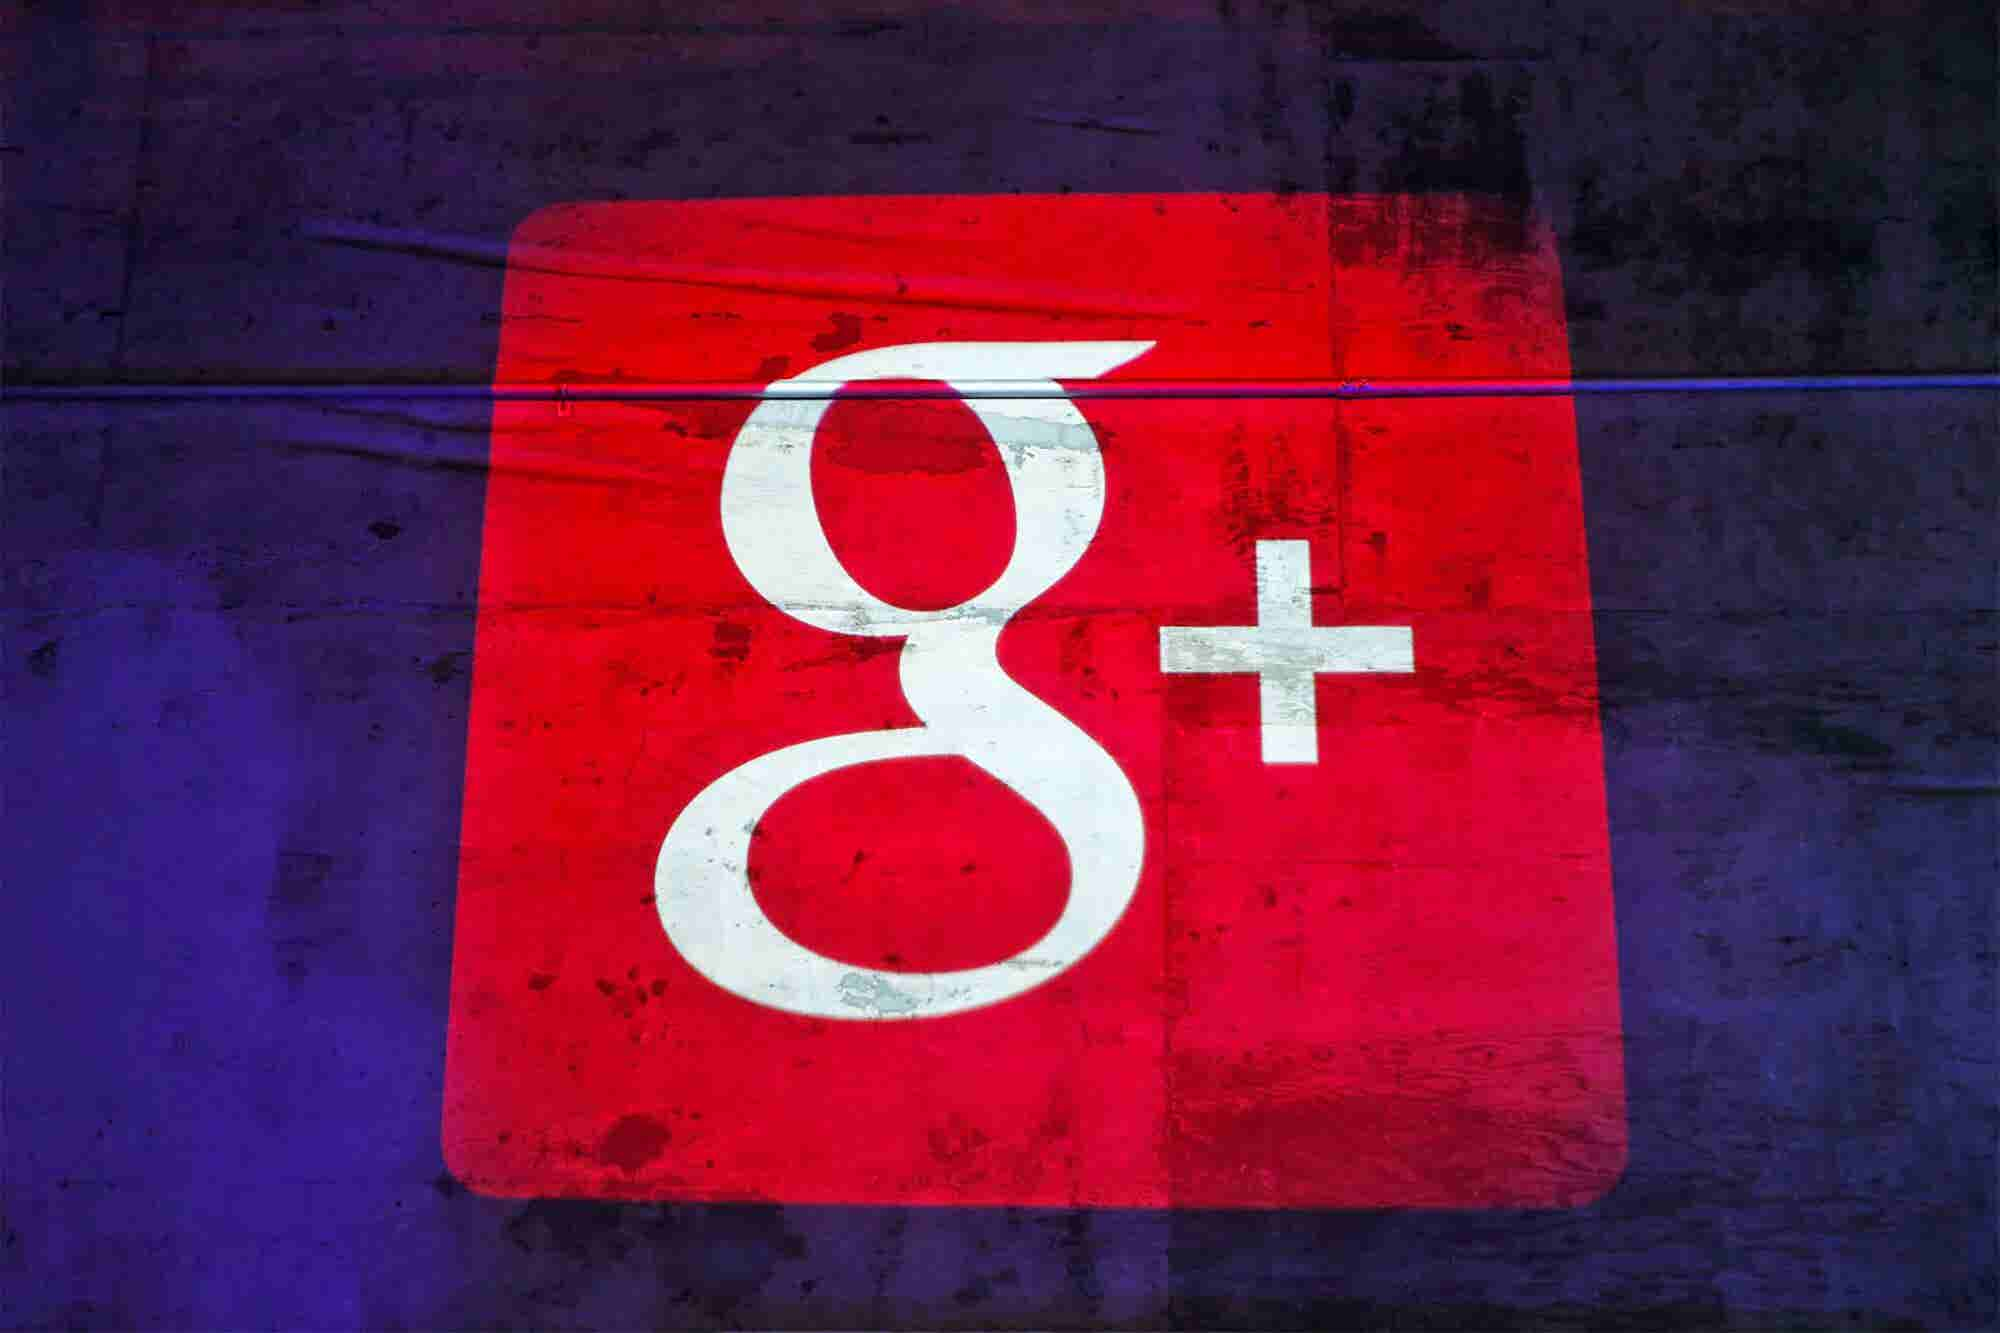 Google Shutters Google+ After It Exposed Data for Hundreds of Thousand...